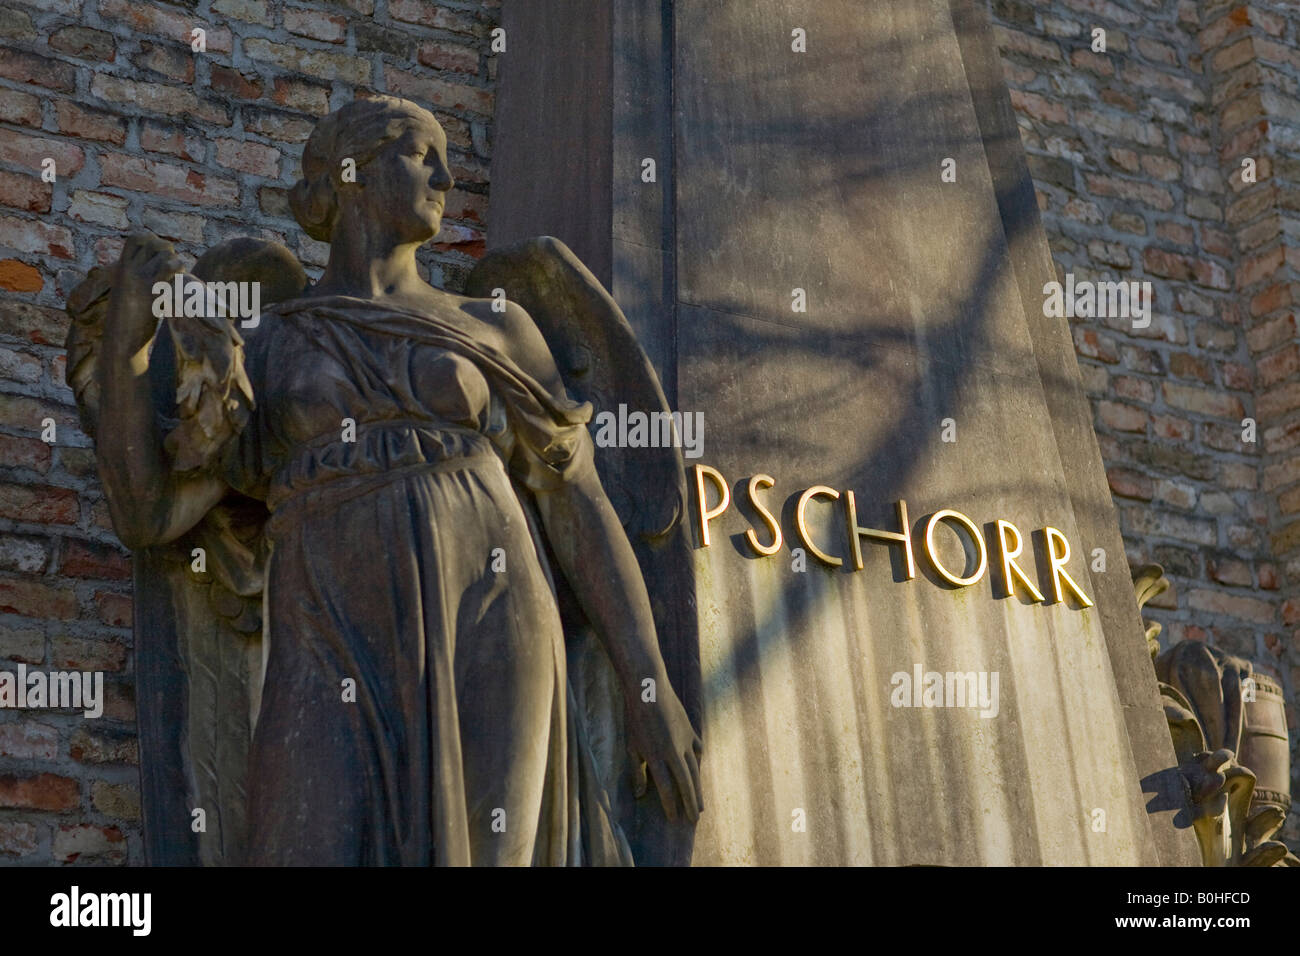 Grave of the Pschorr Family of beer brewers, Alter Suedfriedhof, old cemetery in Munich, Bavaria, Germany - Stock Image